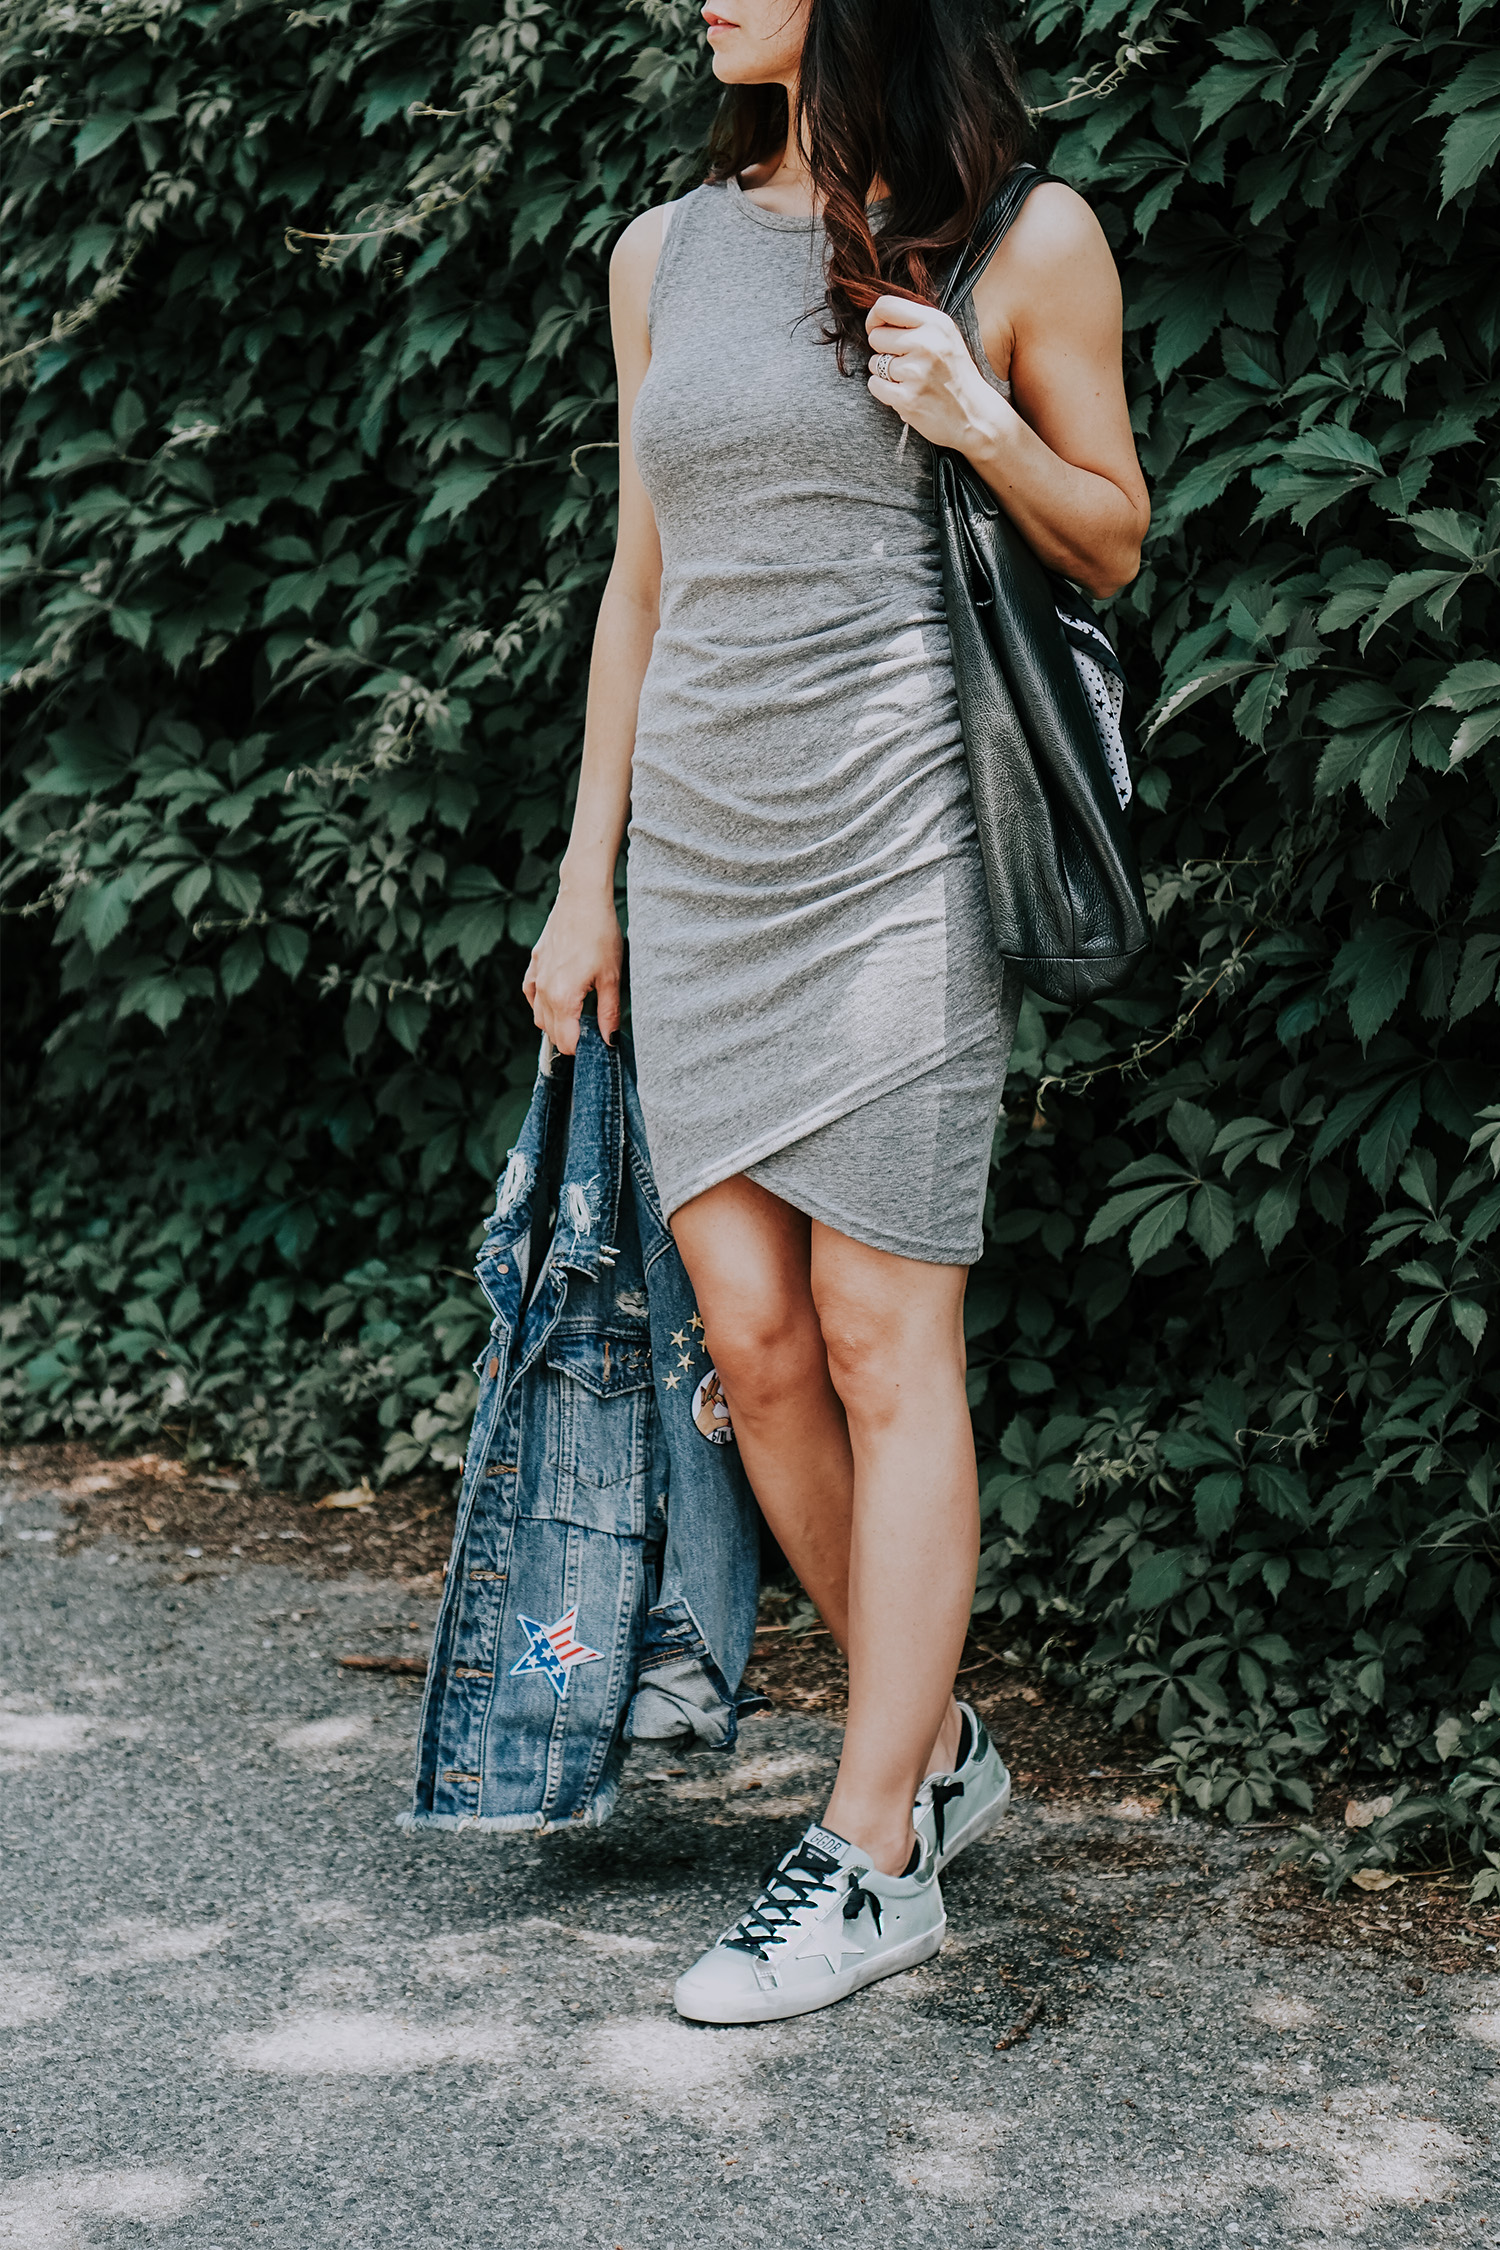 How to Style a Body Con Dress